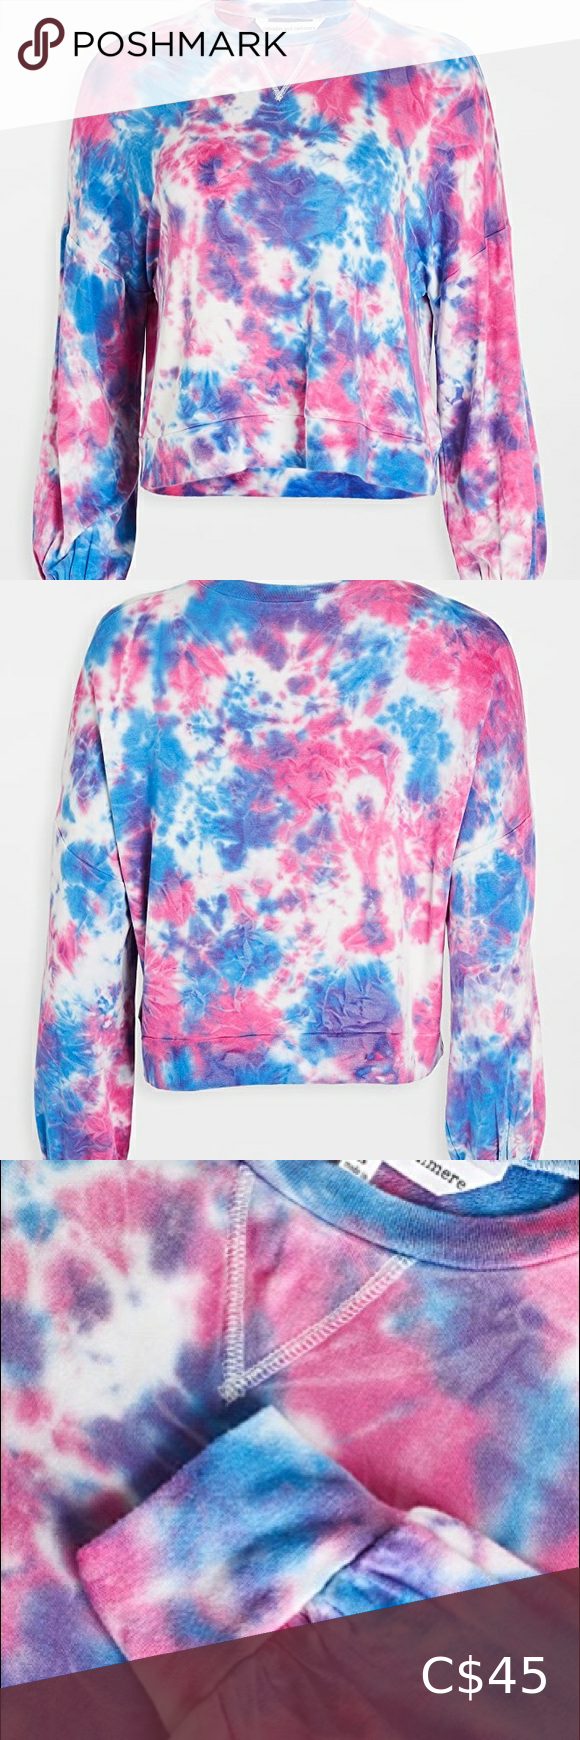 New Cupcakes Cashmere Tie Dye Sweater Nwt Cupcakes And Cashmere Tie Dye Sweater Tie Dye Sweatshirt [ 1740 x 580 Pixel ]